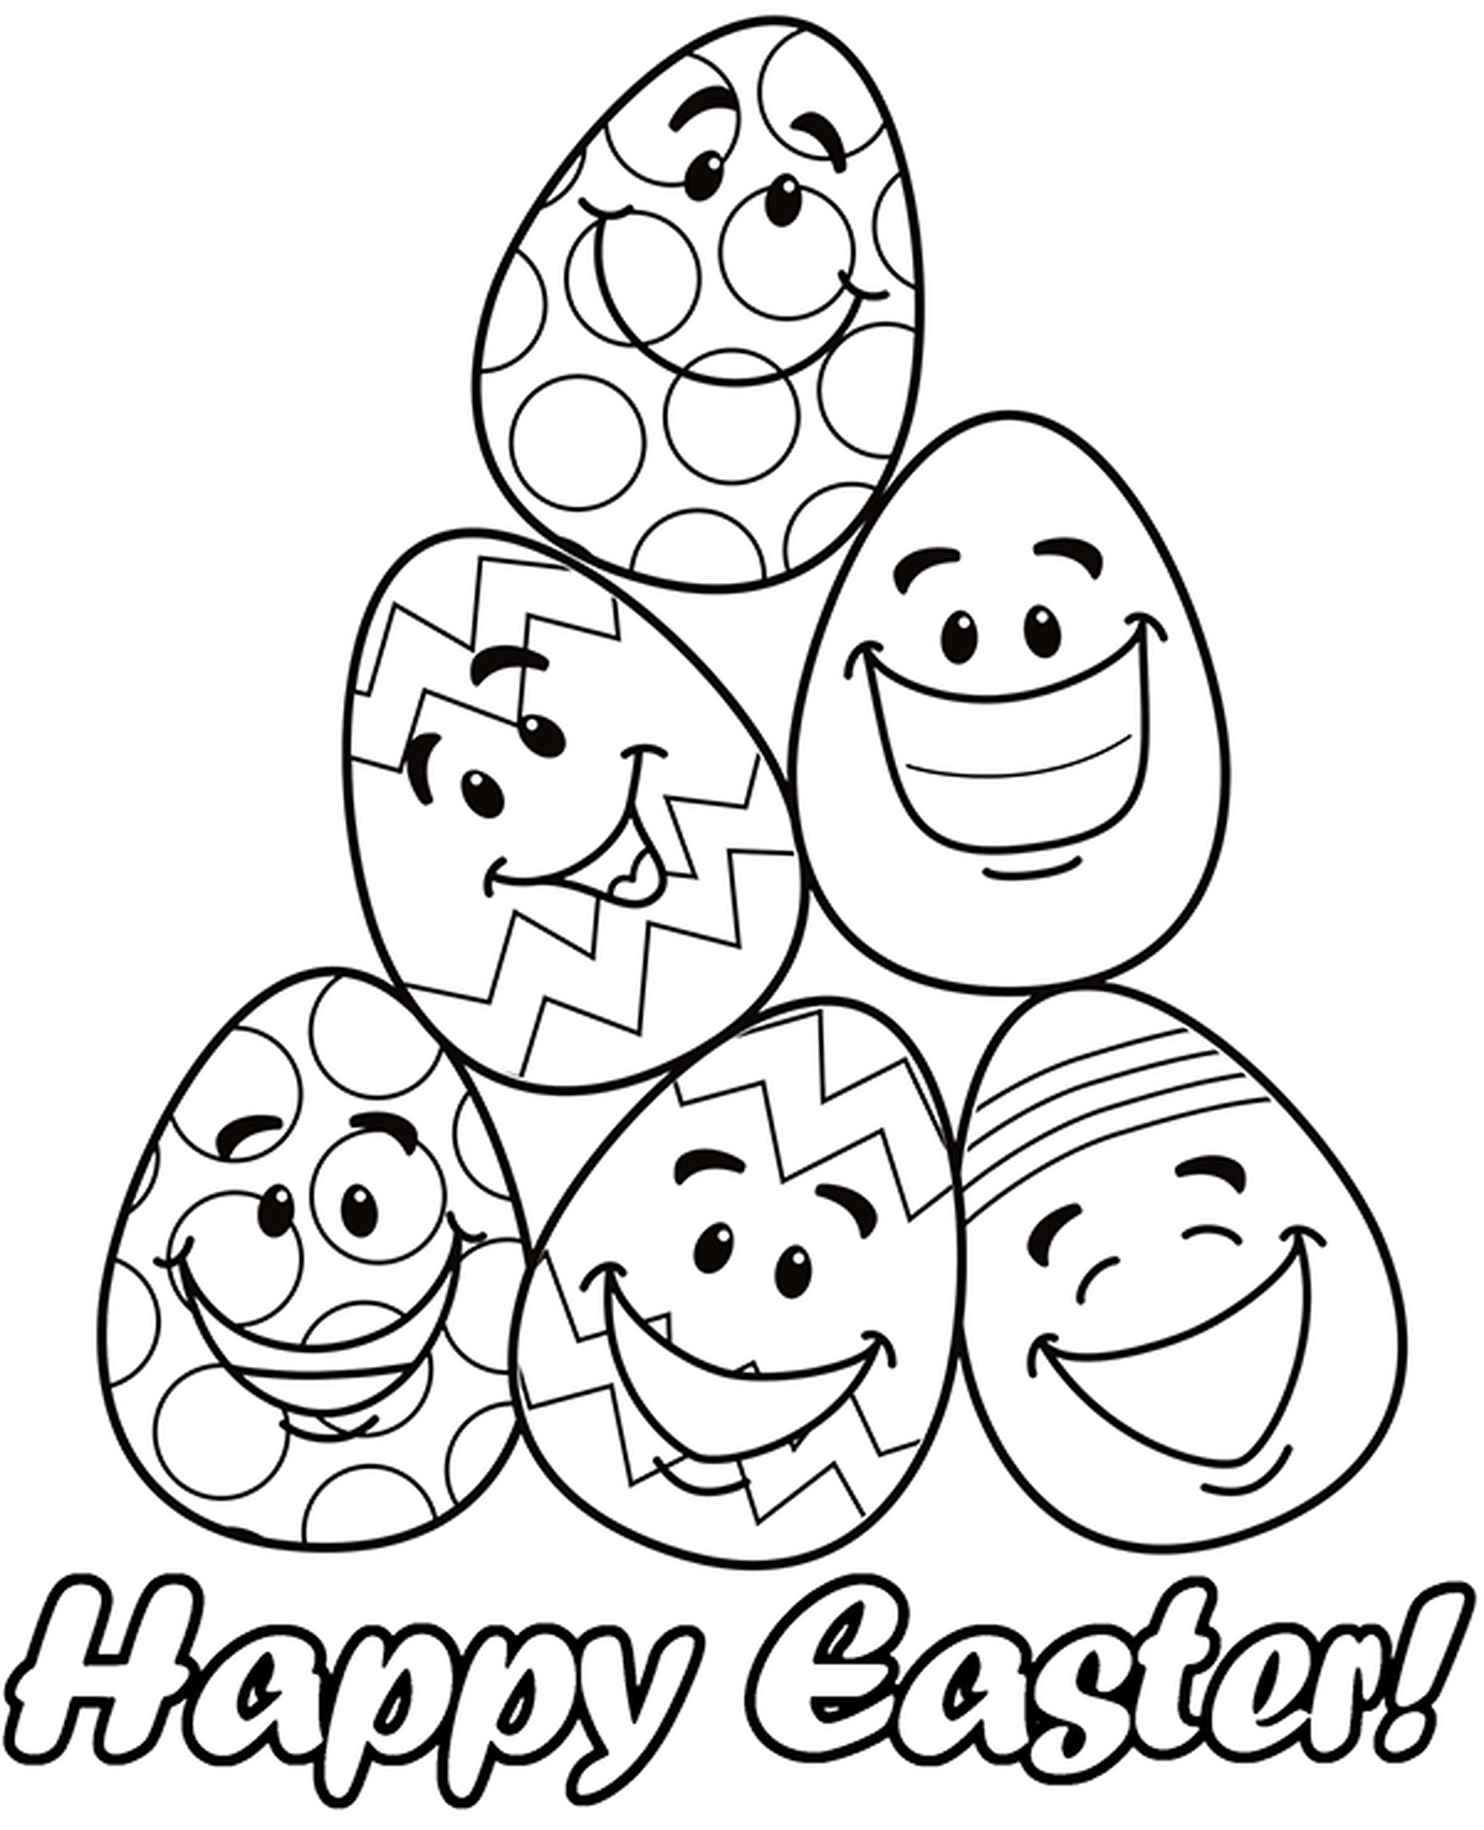 Funny Easter Eggs Coloring Sheet